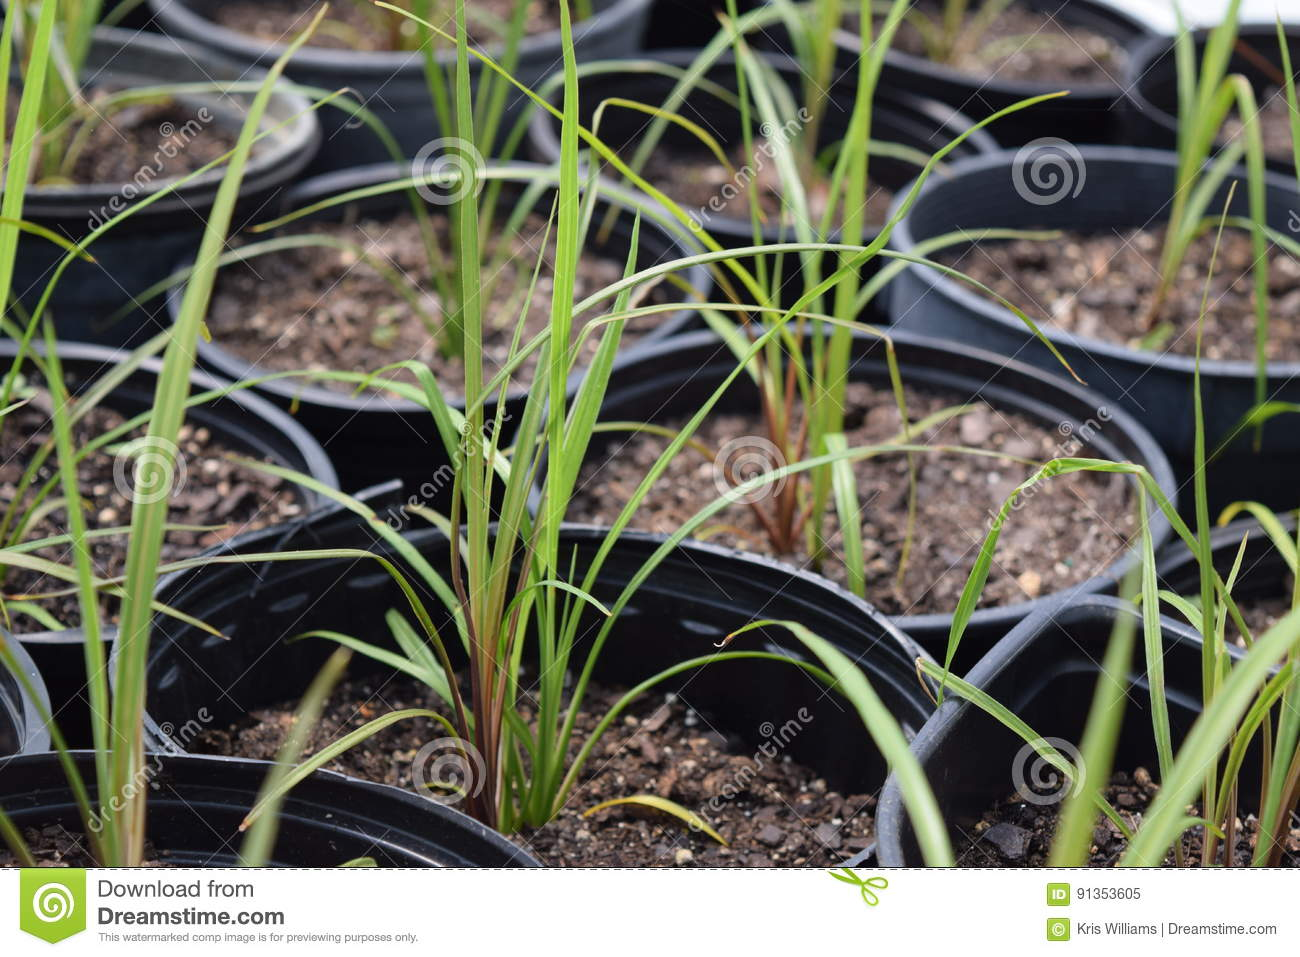 Potted grass seedlings grown in a hoop tunnel